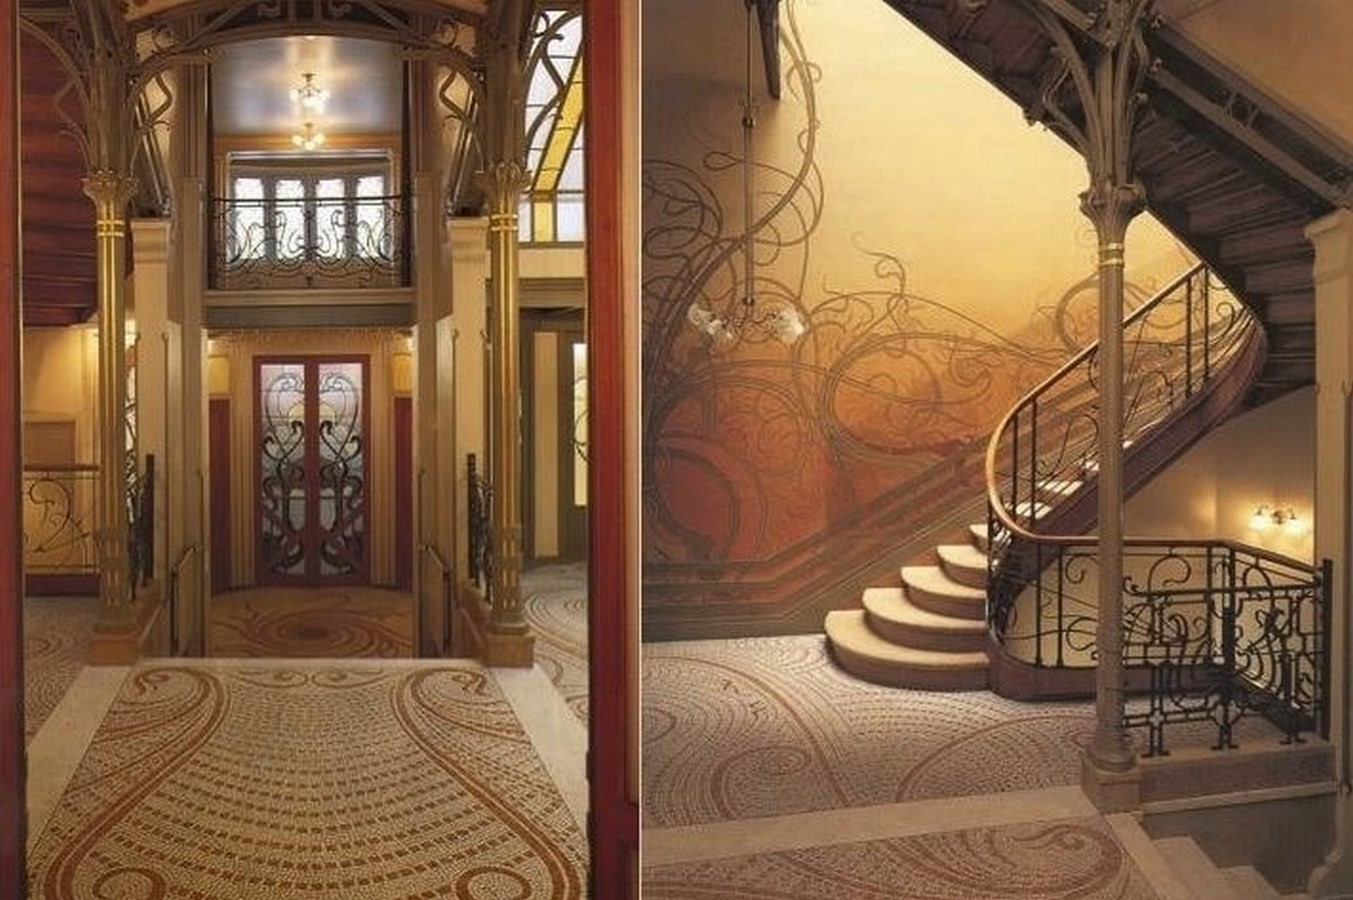 15 Examples of Art Nouveau in Architecture - Hotel Tassel, Brussels